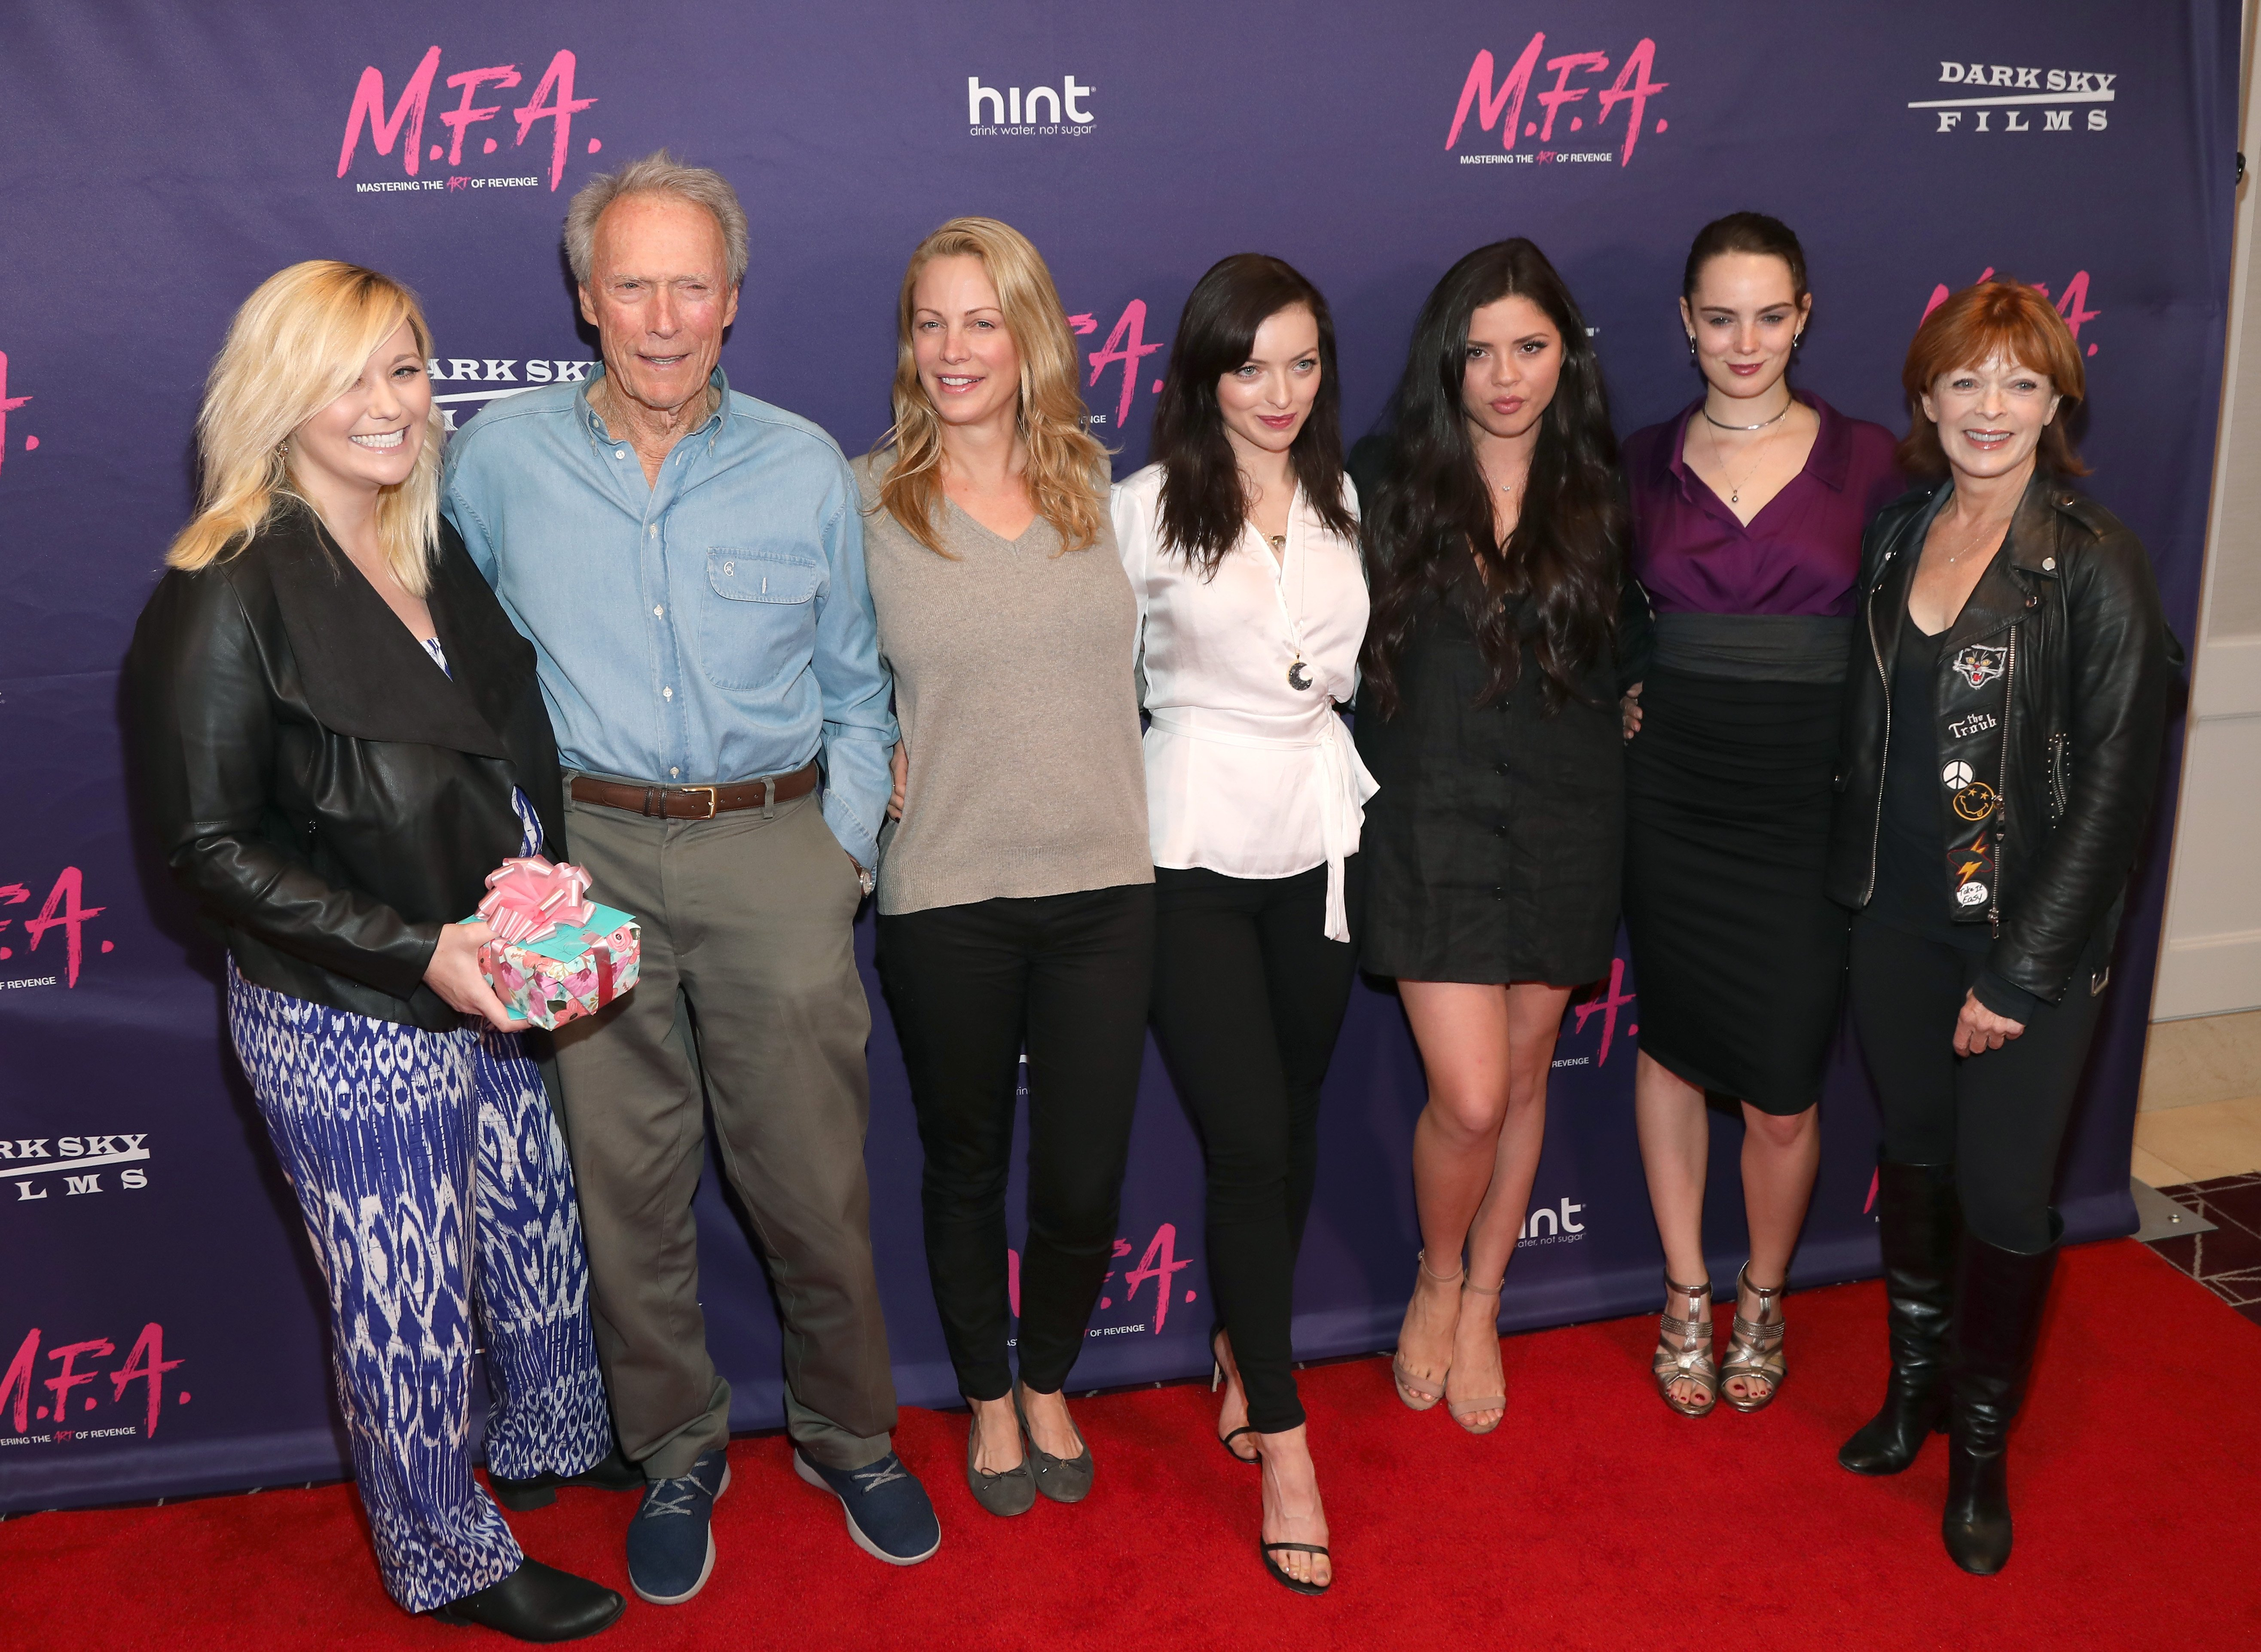 "Kathryn Eastwood, Clint Eastwood, Alison Eastwood, Francesca Eastwood, Morgan Eastwood und Francis Fisher nehmen an der Premiere von ""M.F.A."" von Dark Sky Films teil, im London West Hollywood am 2. Oktober 2017 in West Hollywood, Kalifornien 